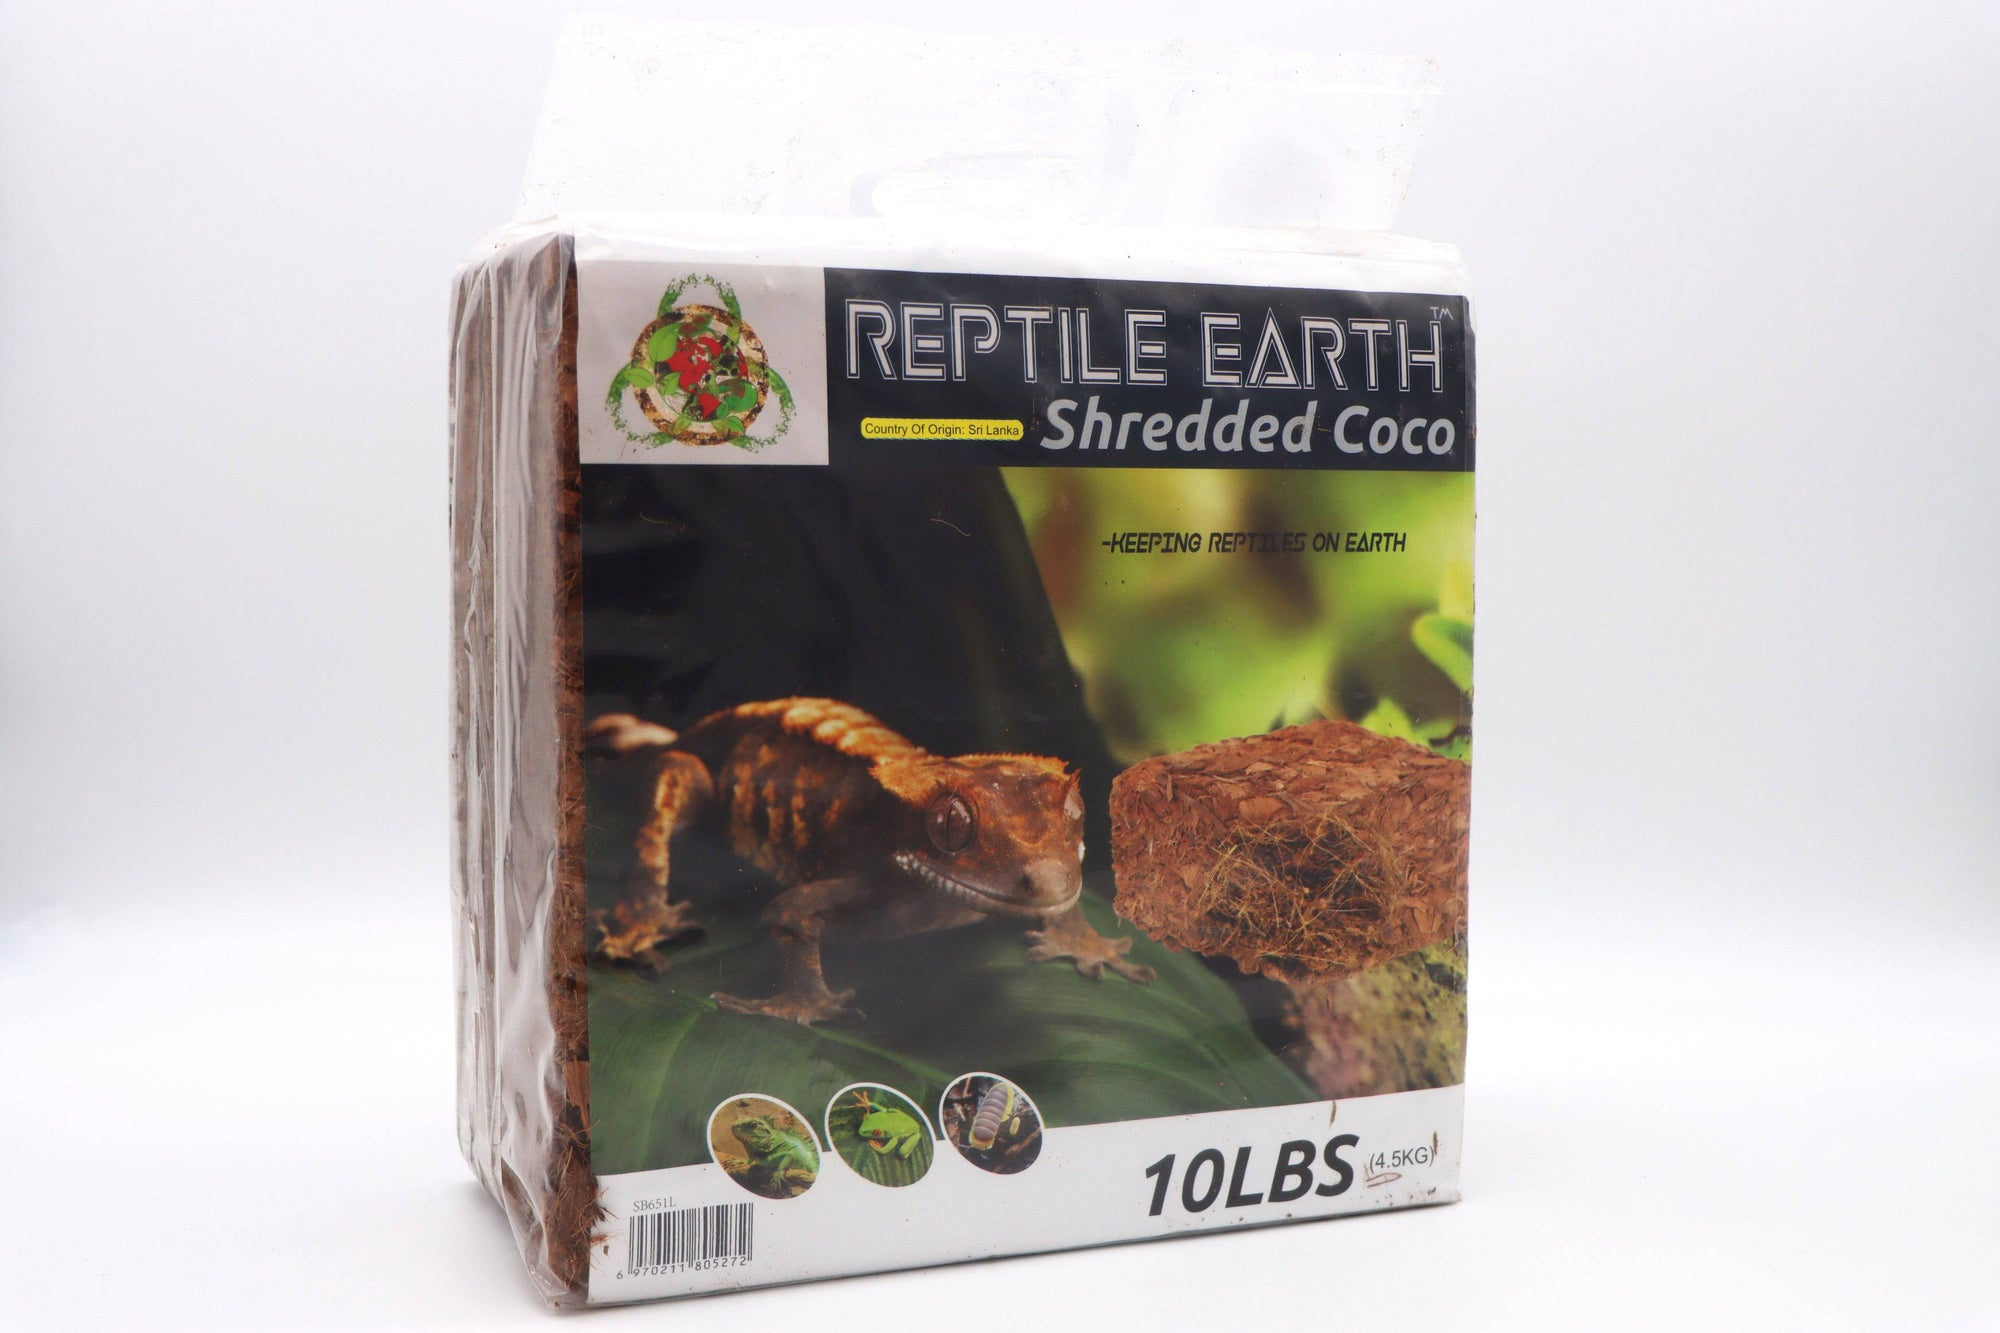 Reptile Earth - Shredded Coco Compressed 10lb Block